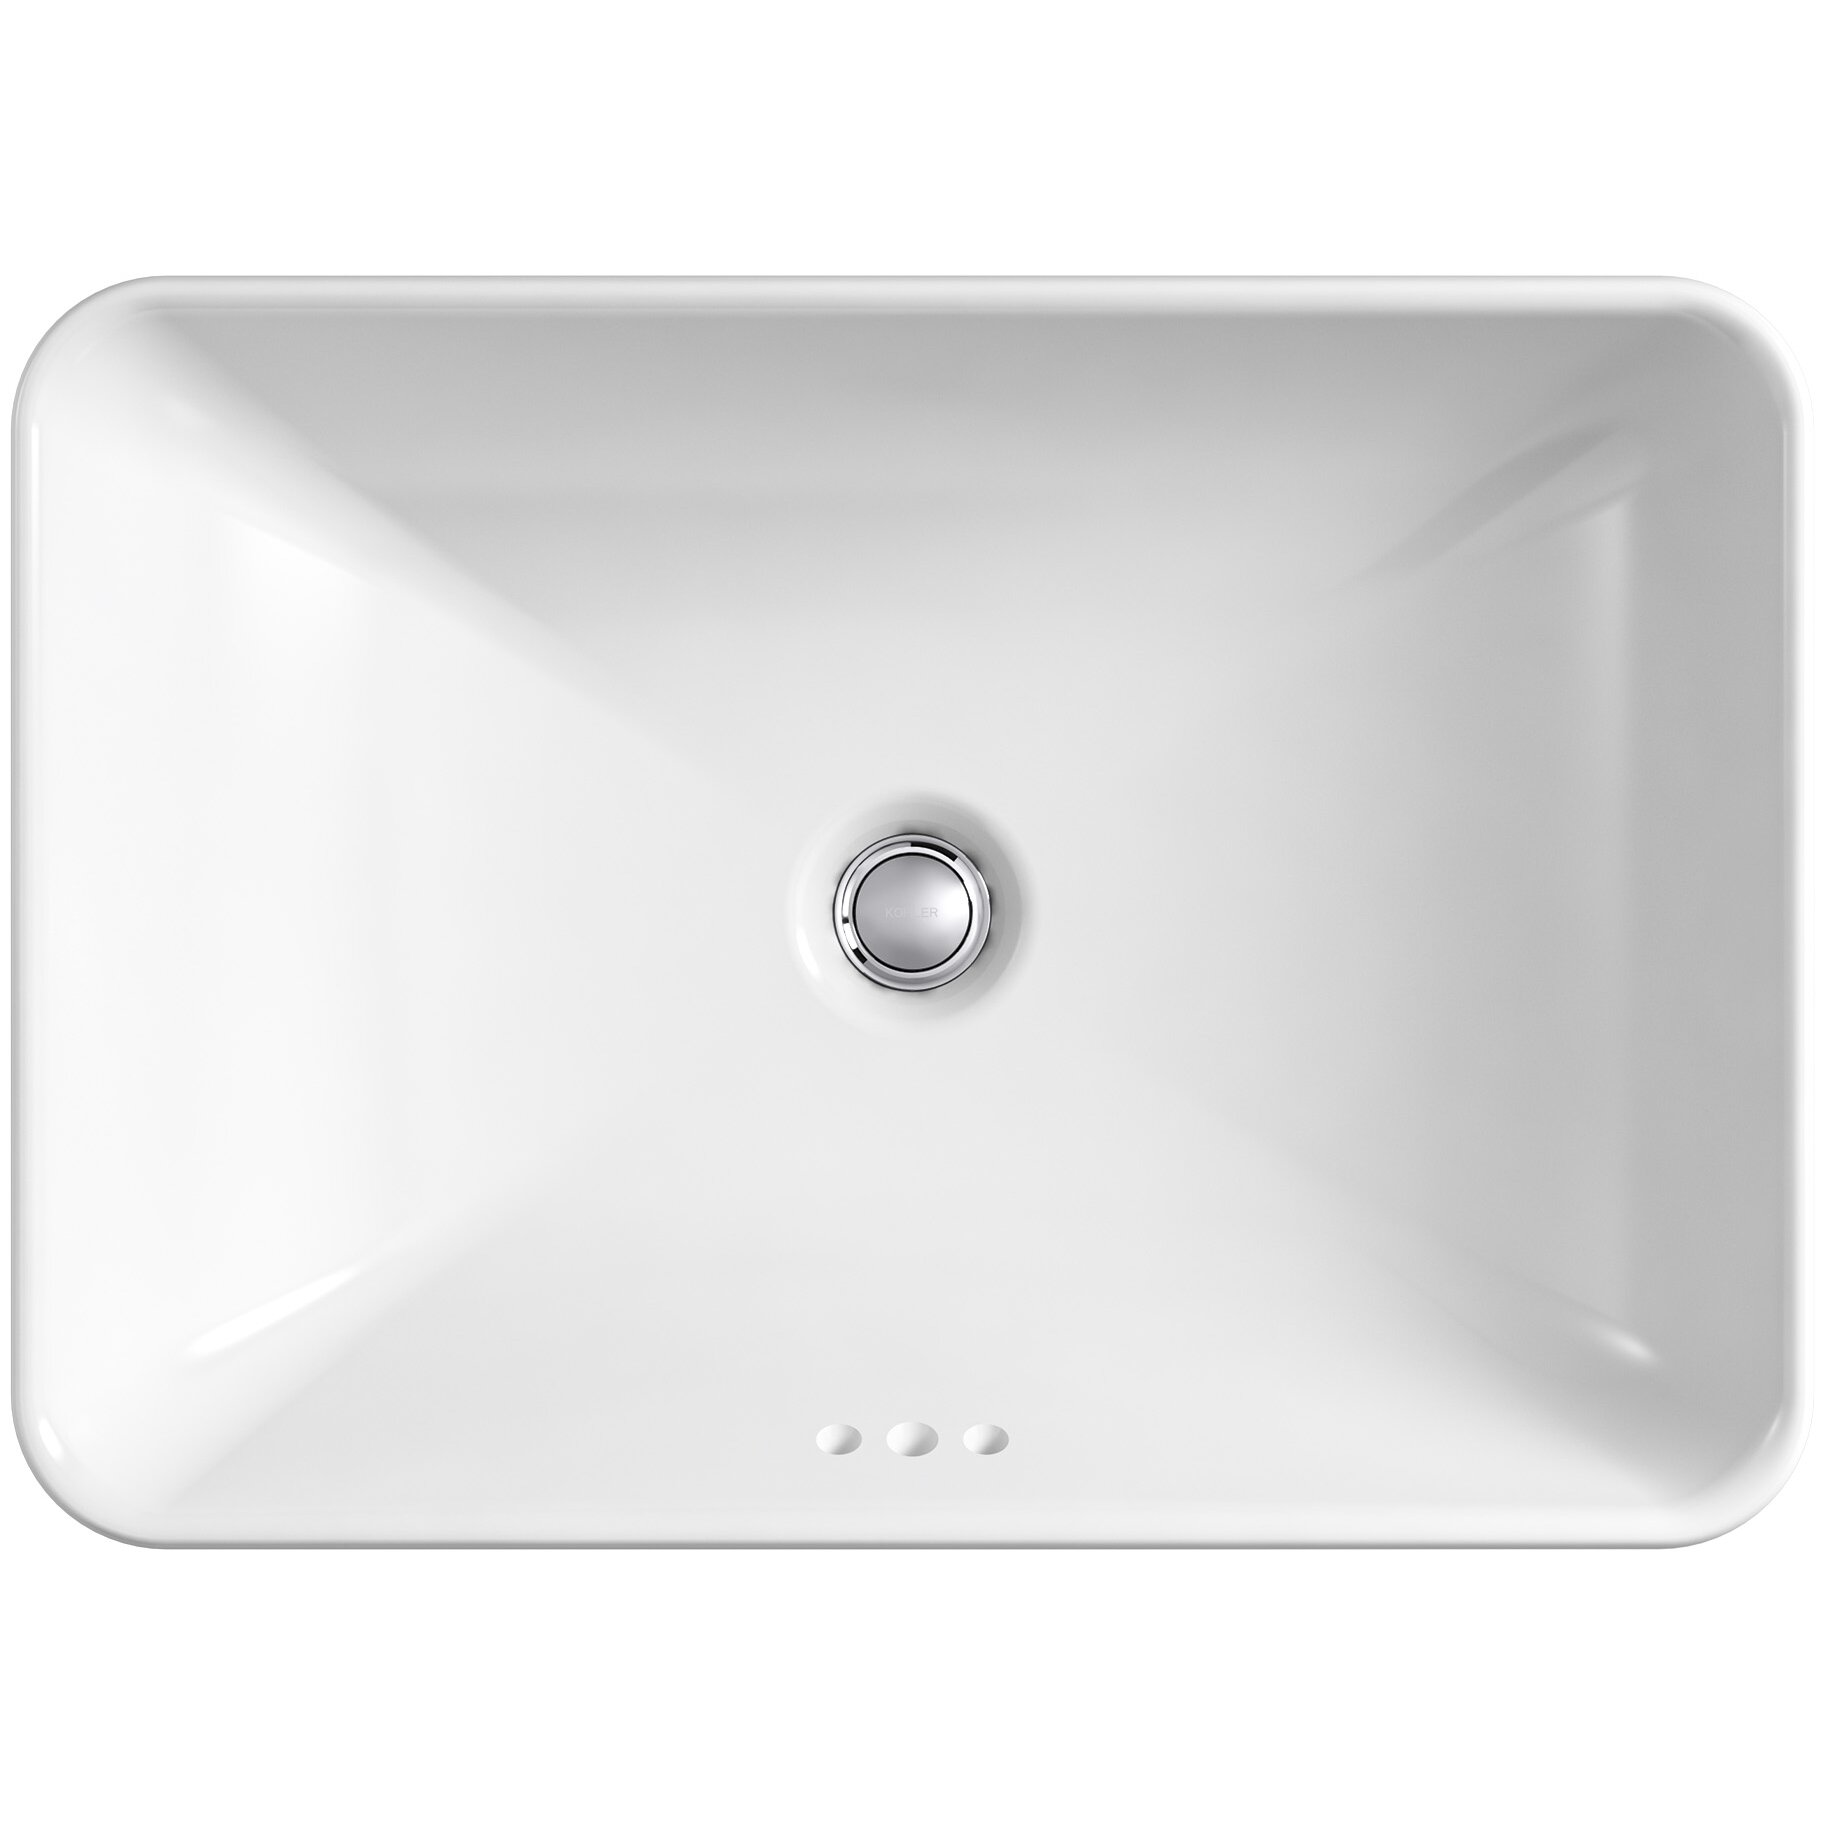 Kohler Vox Sink : Kohler Vox Rectangle Vessel Above-Counter Bathroom Sink in White ...